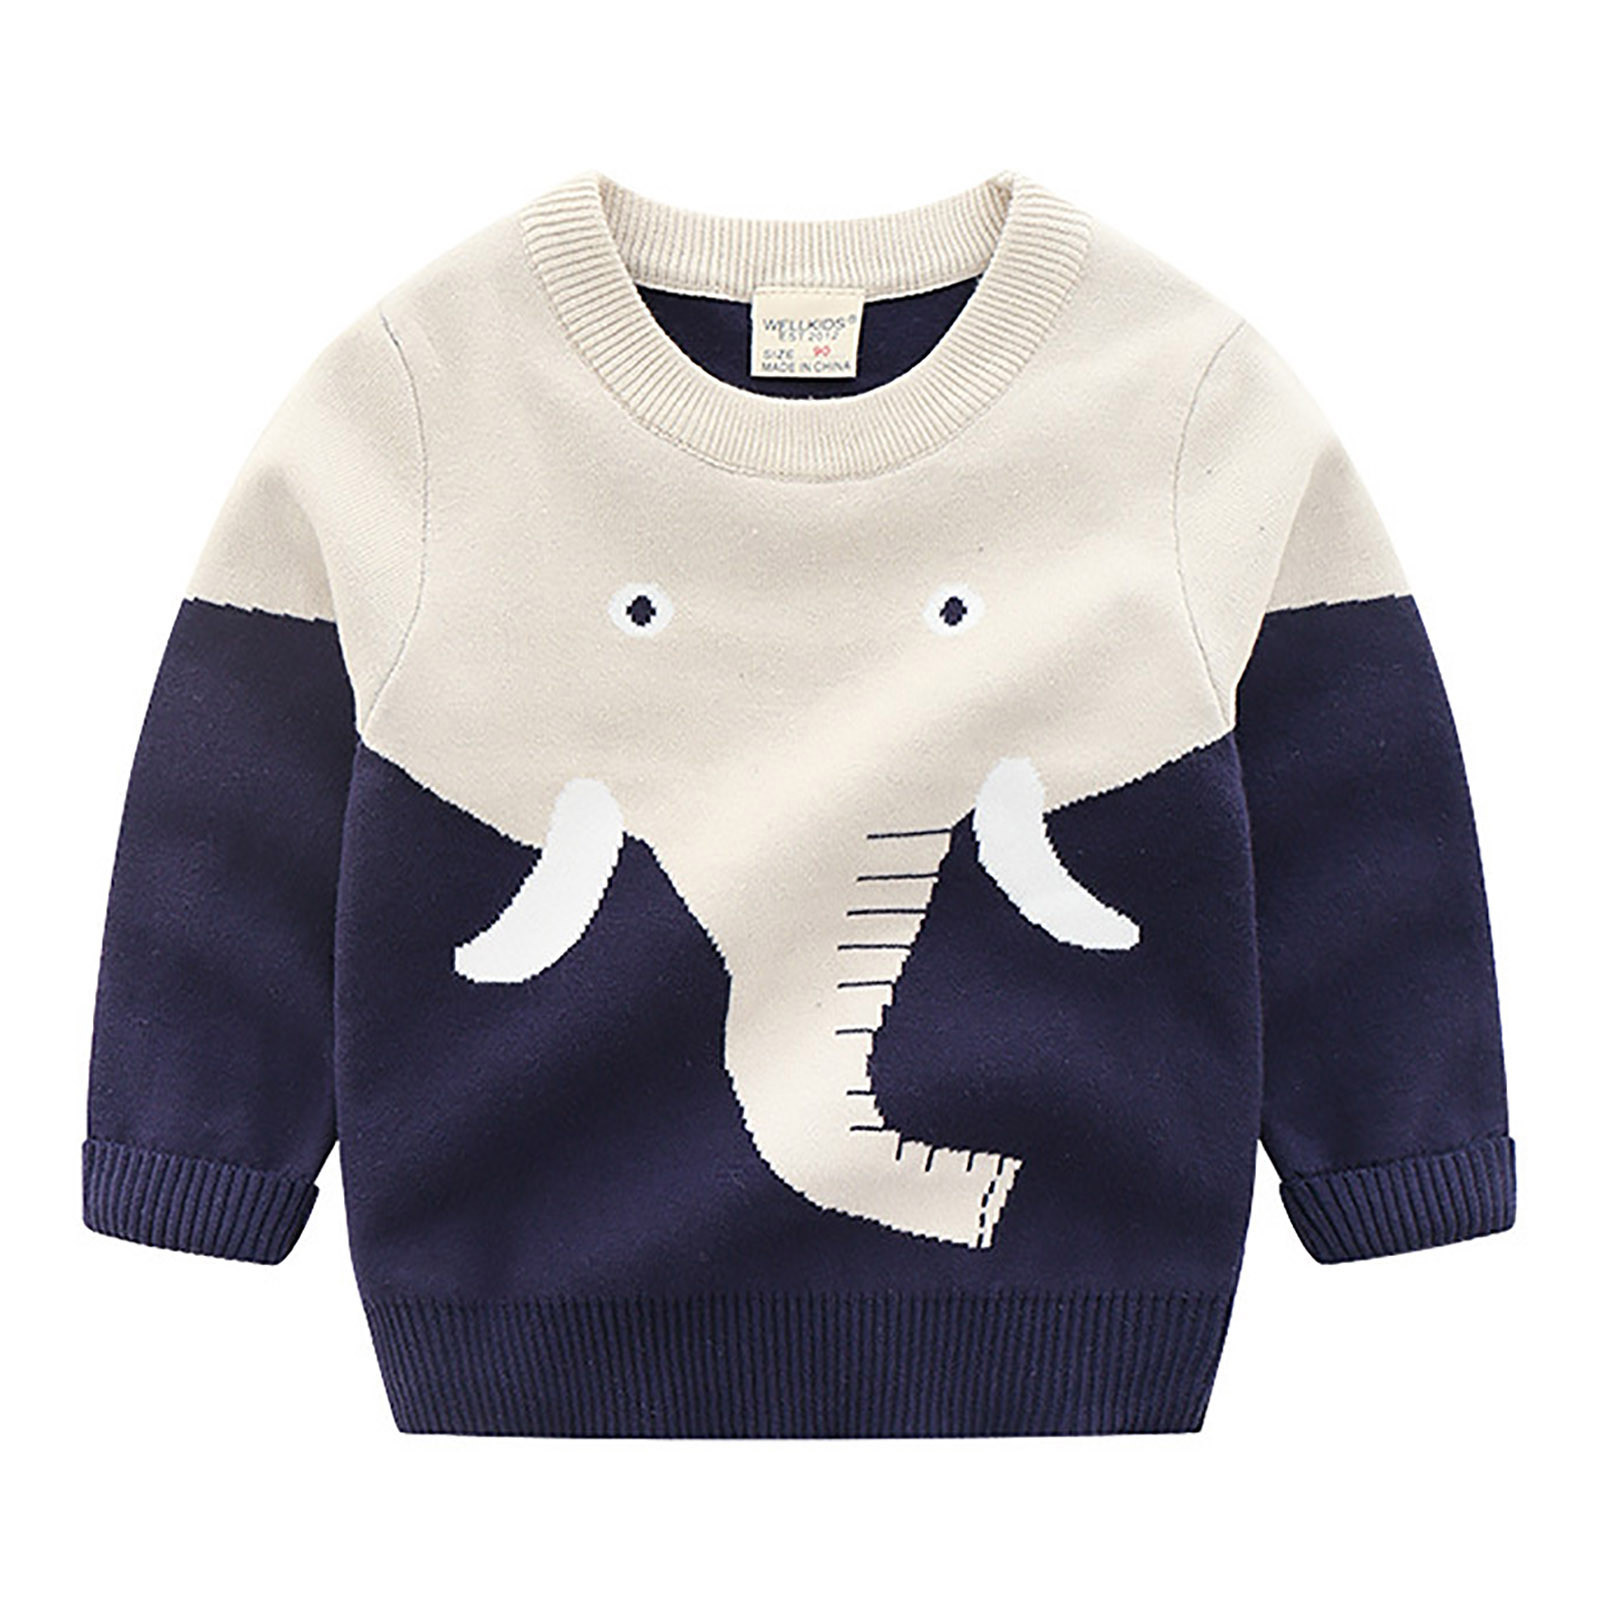 baby clothes Hoodies for boys  Sweatshirts Infant Kid Baby Boys Cartoon Print TopsCartoon Print Knitted Top For Infant Boys